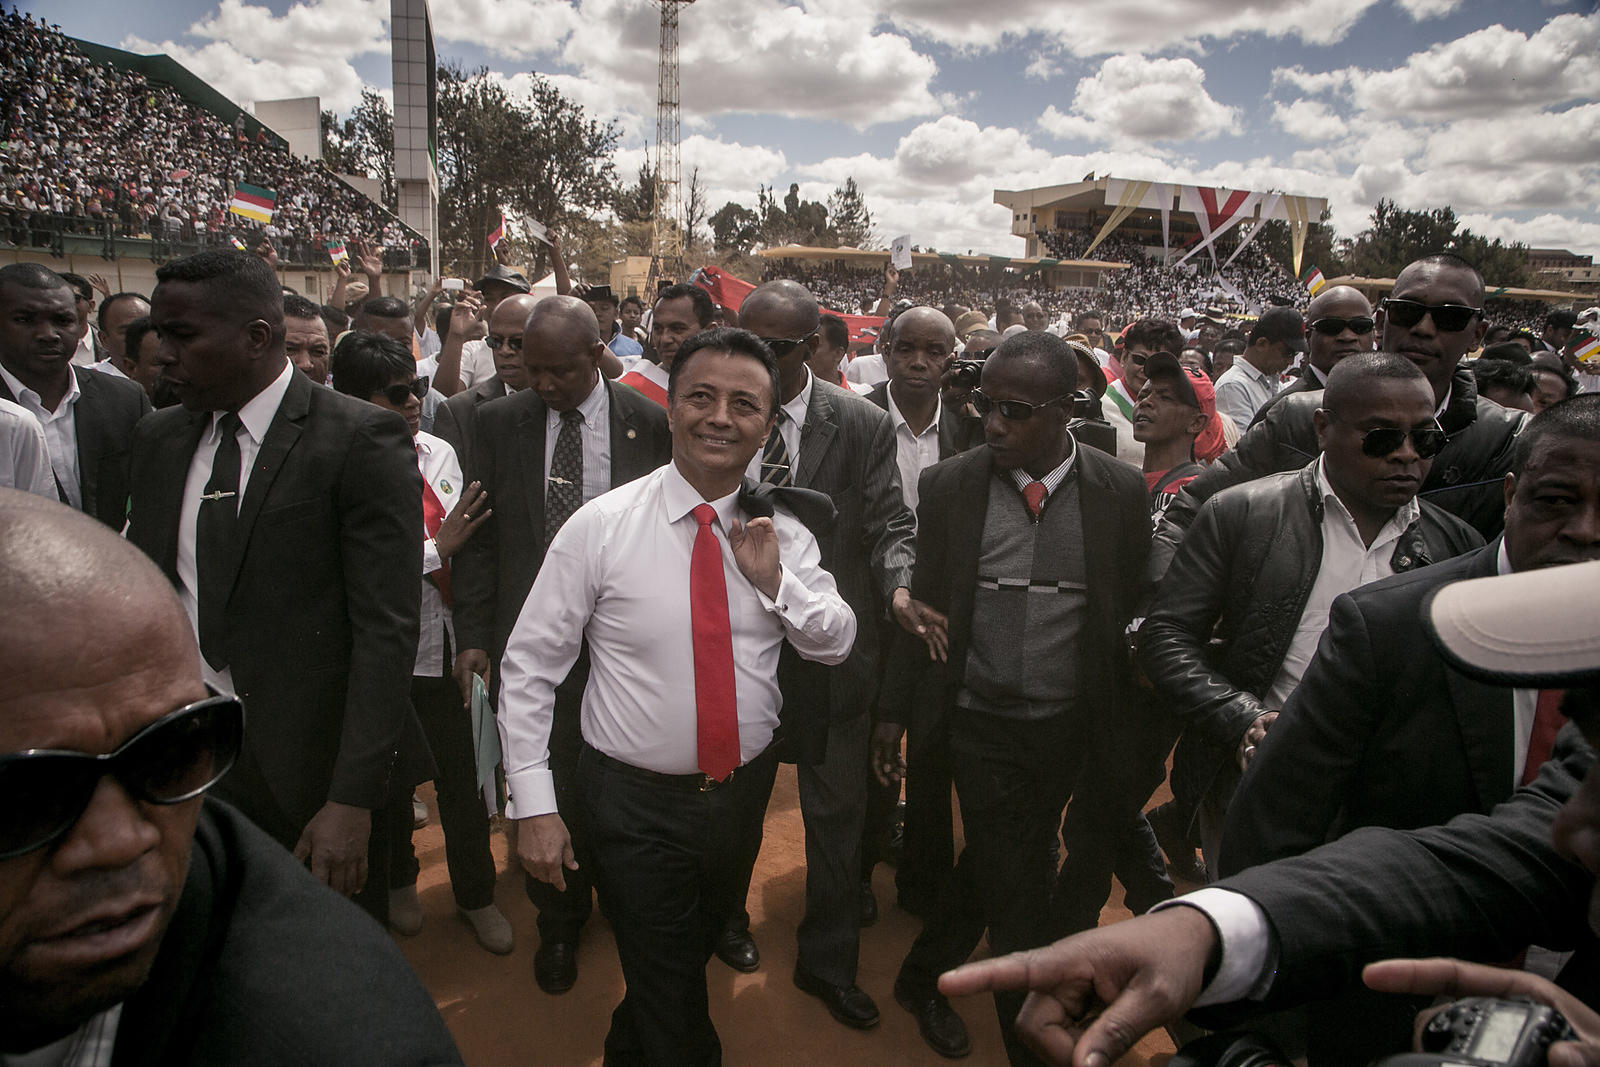 Marc RAVALOMANANA, former President of Madagascar and candidate in the 2018 presidential election, greets his supporters at his first major political meeting at the Mahamasina stadium in Antananarivo on August 25, 2018.